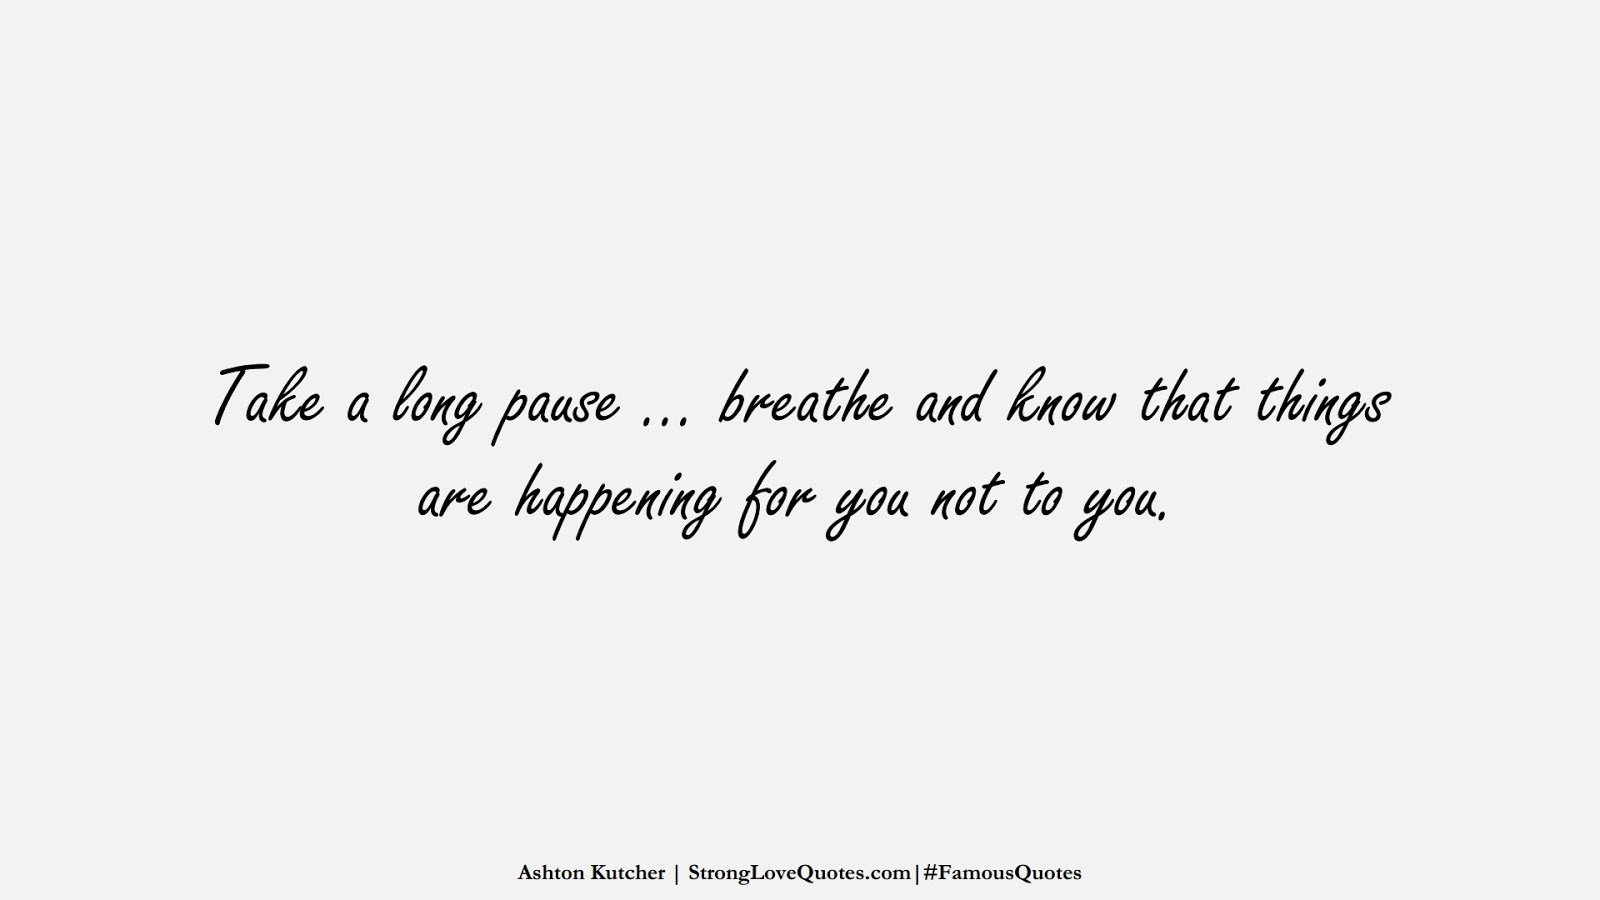 Take a long pause … breathe and know that things are happening for you not to you. (Ashton Kutcher);  #FamousQuotes